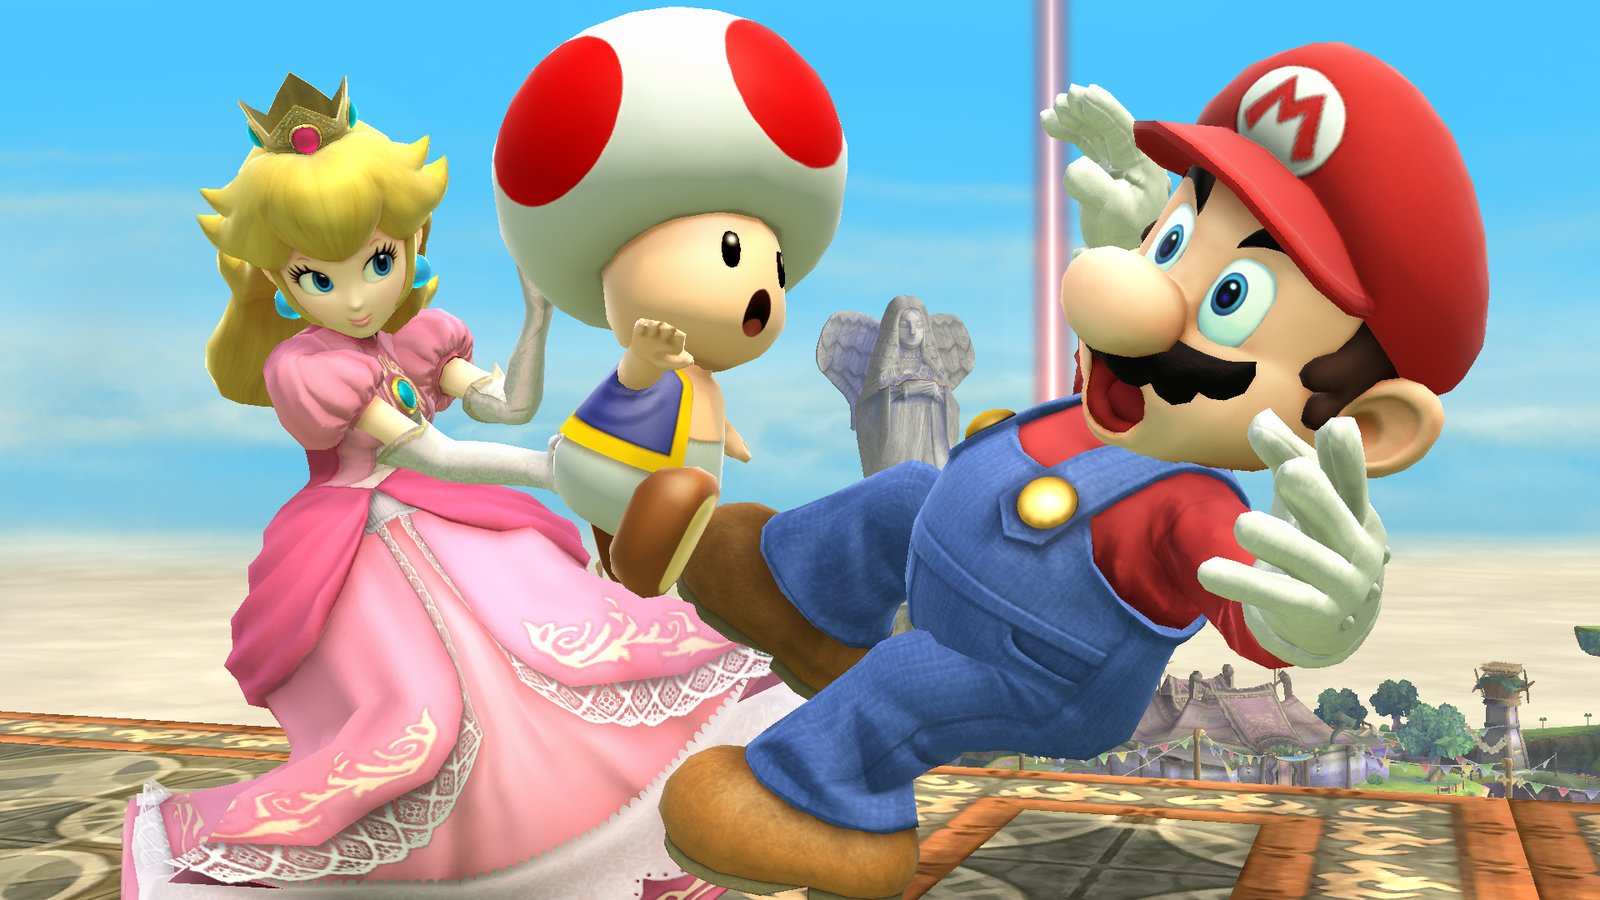 Mario and Peach - 32 years together and counting.